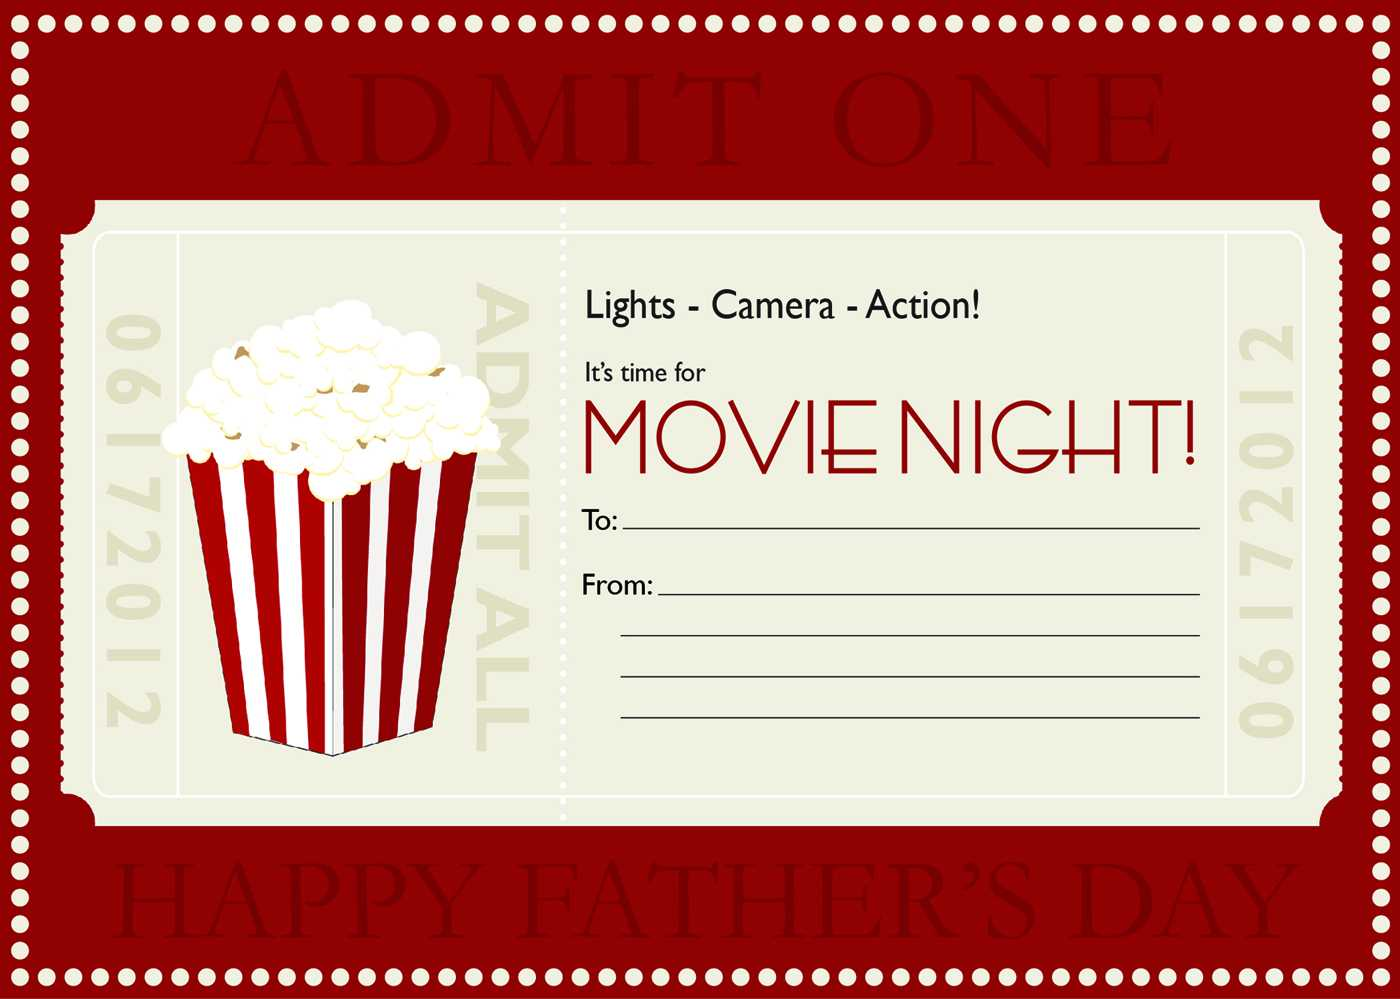 Movie Gift Certificate Templates   Gift Certificate Templates With Regard To Movie Gift Certificate Template